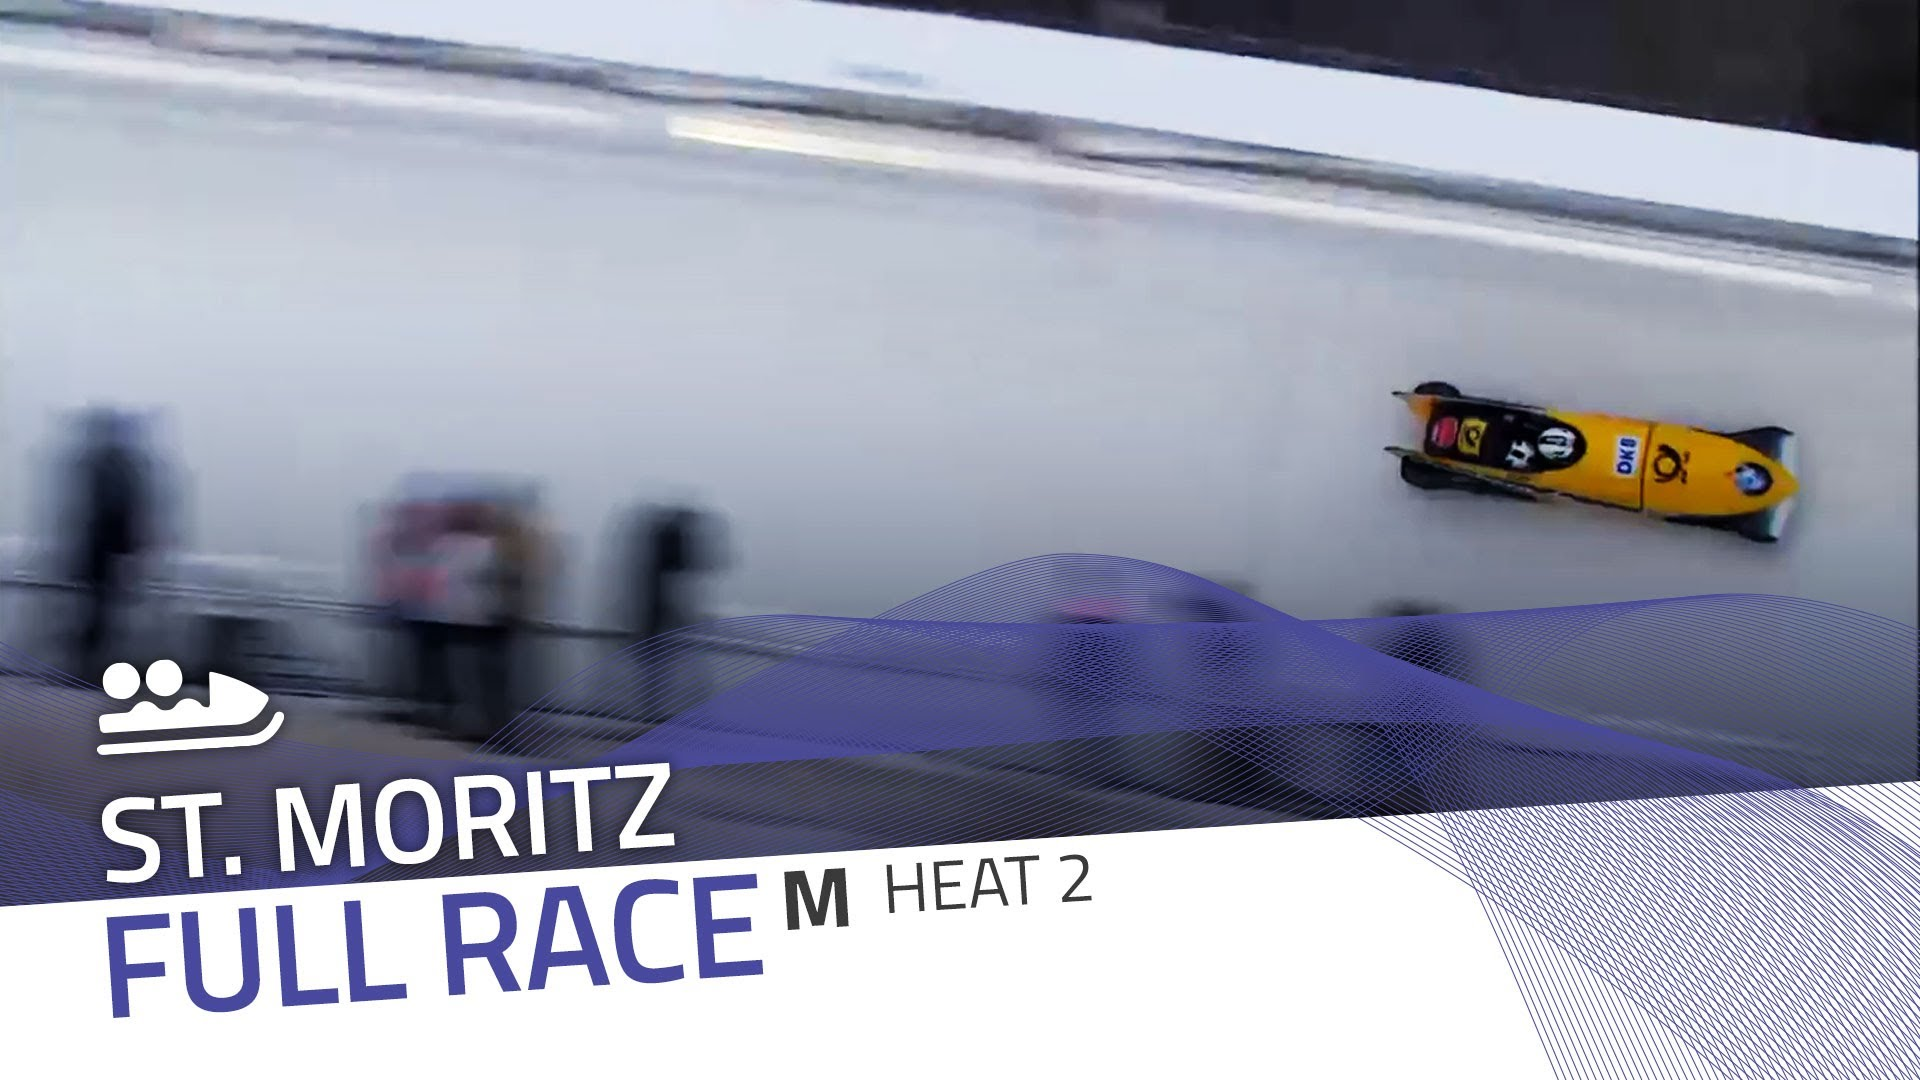 St. moritz | bmw ibsf world cup 2015/2016 - 2-man bobsleigh heat 2 | ibsf official